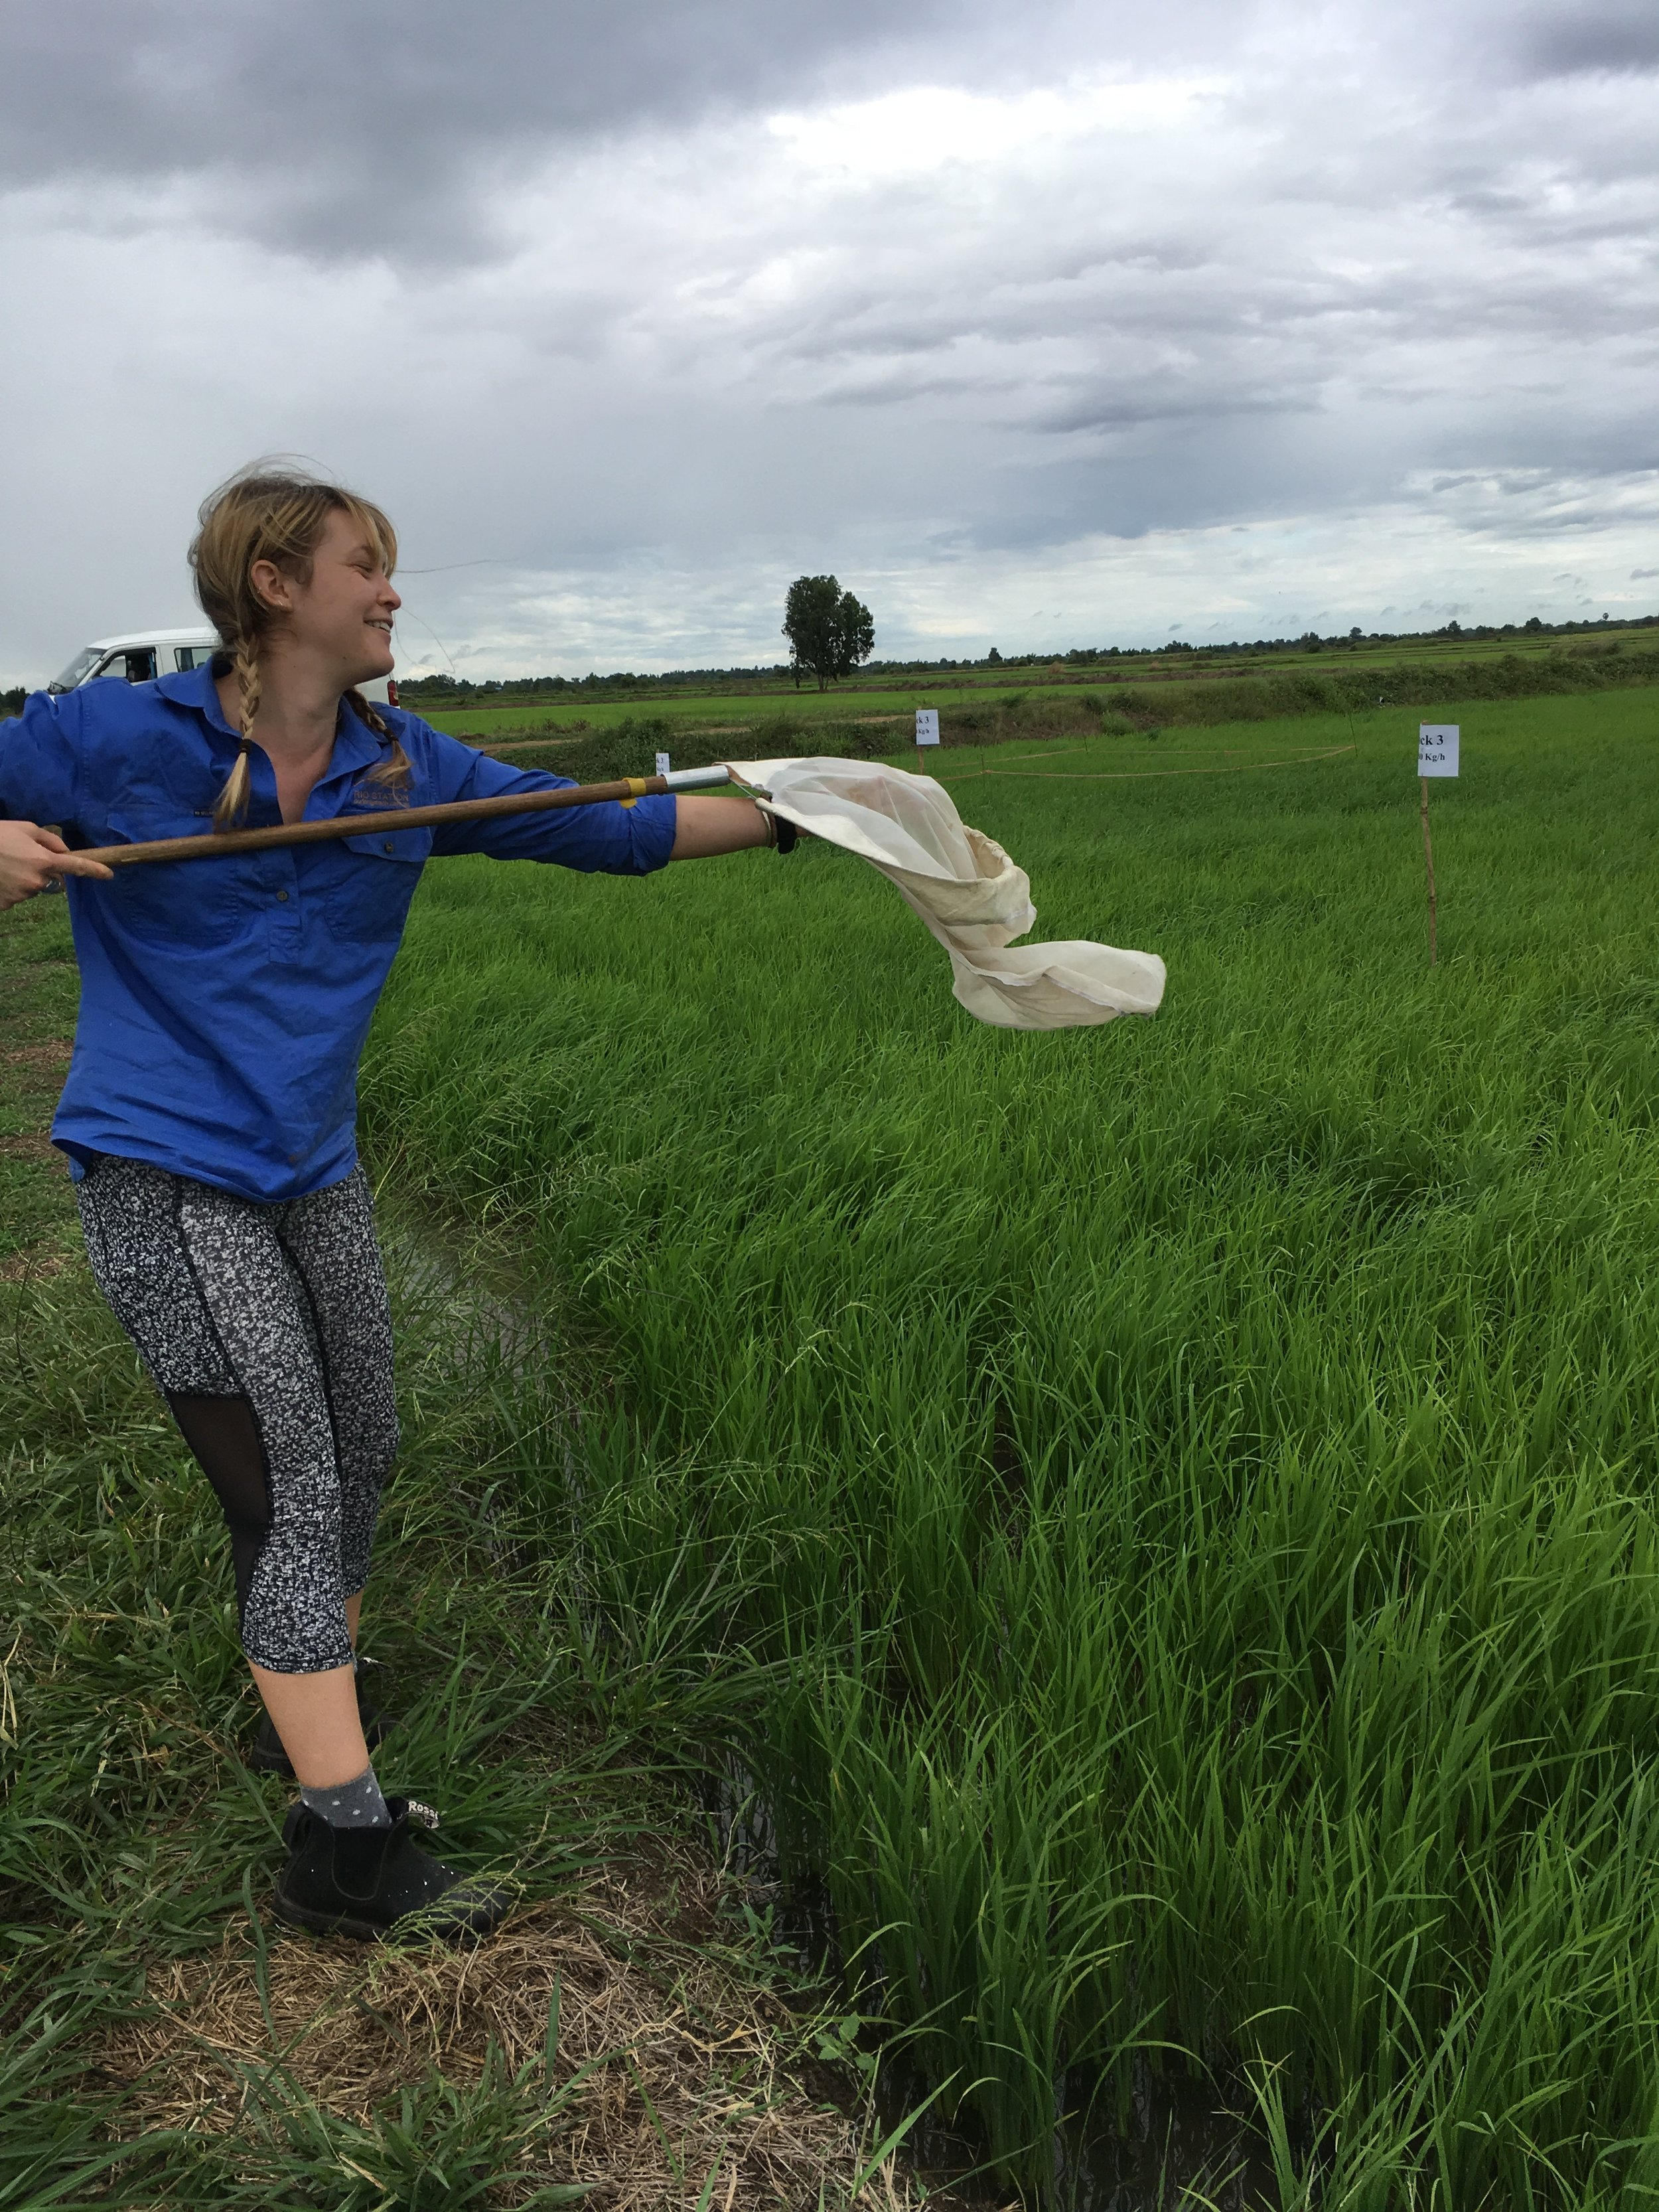 - Surveying insects on Cambodian rice fields